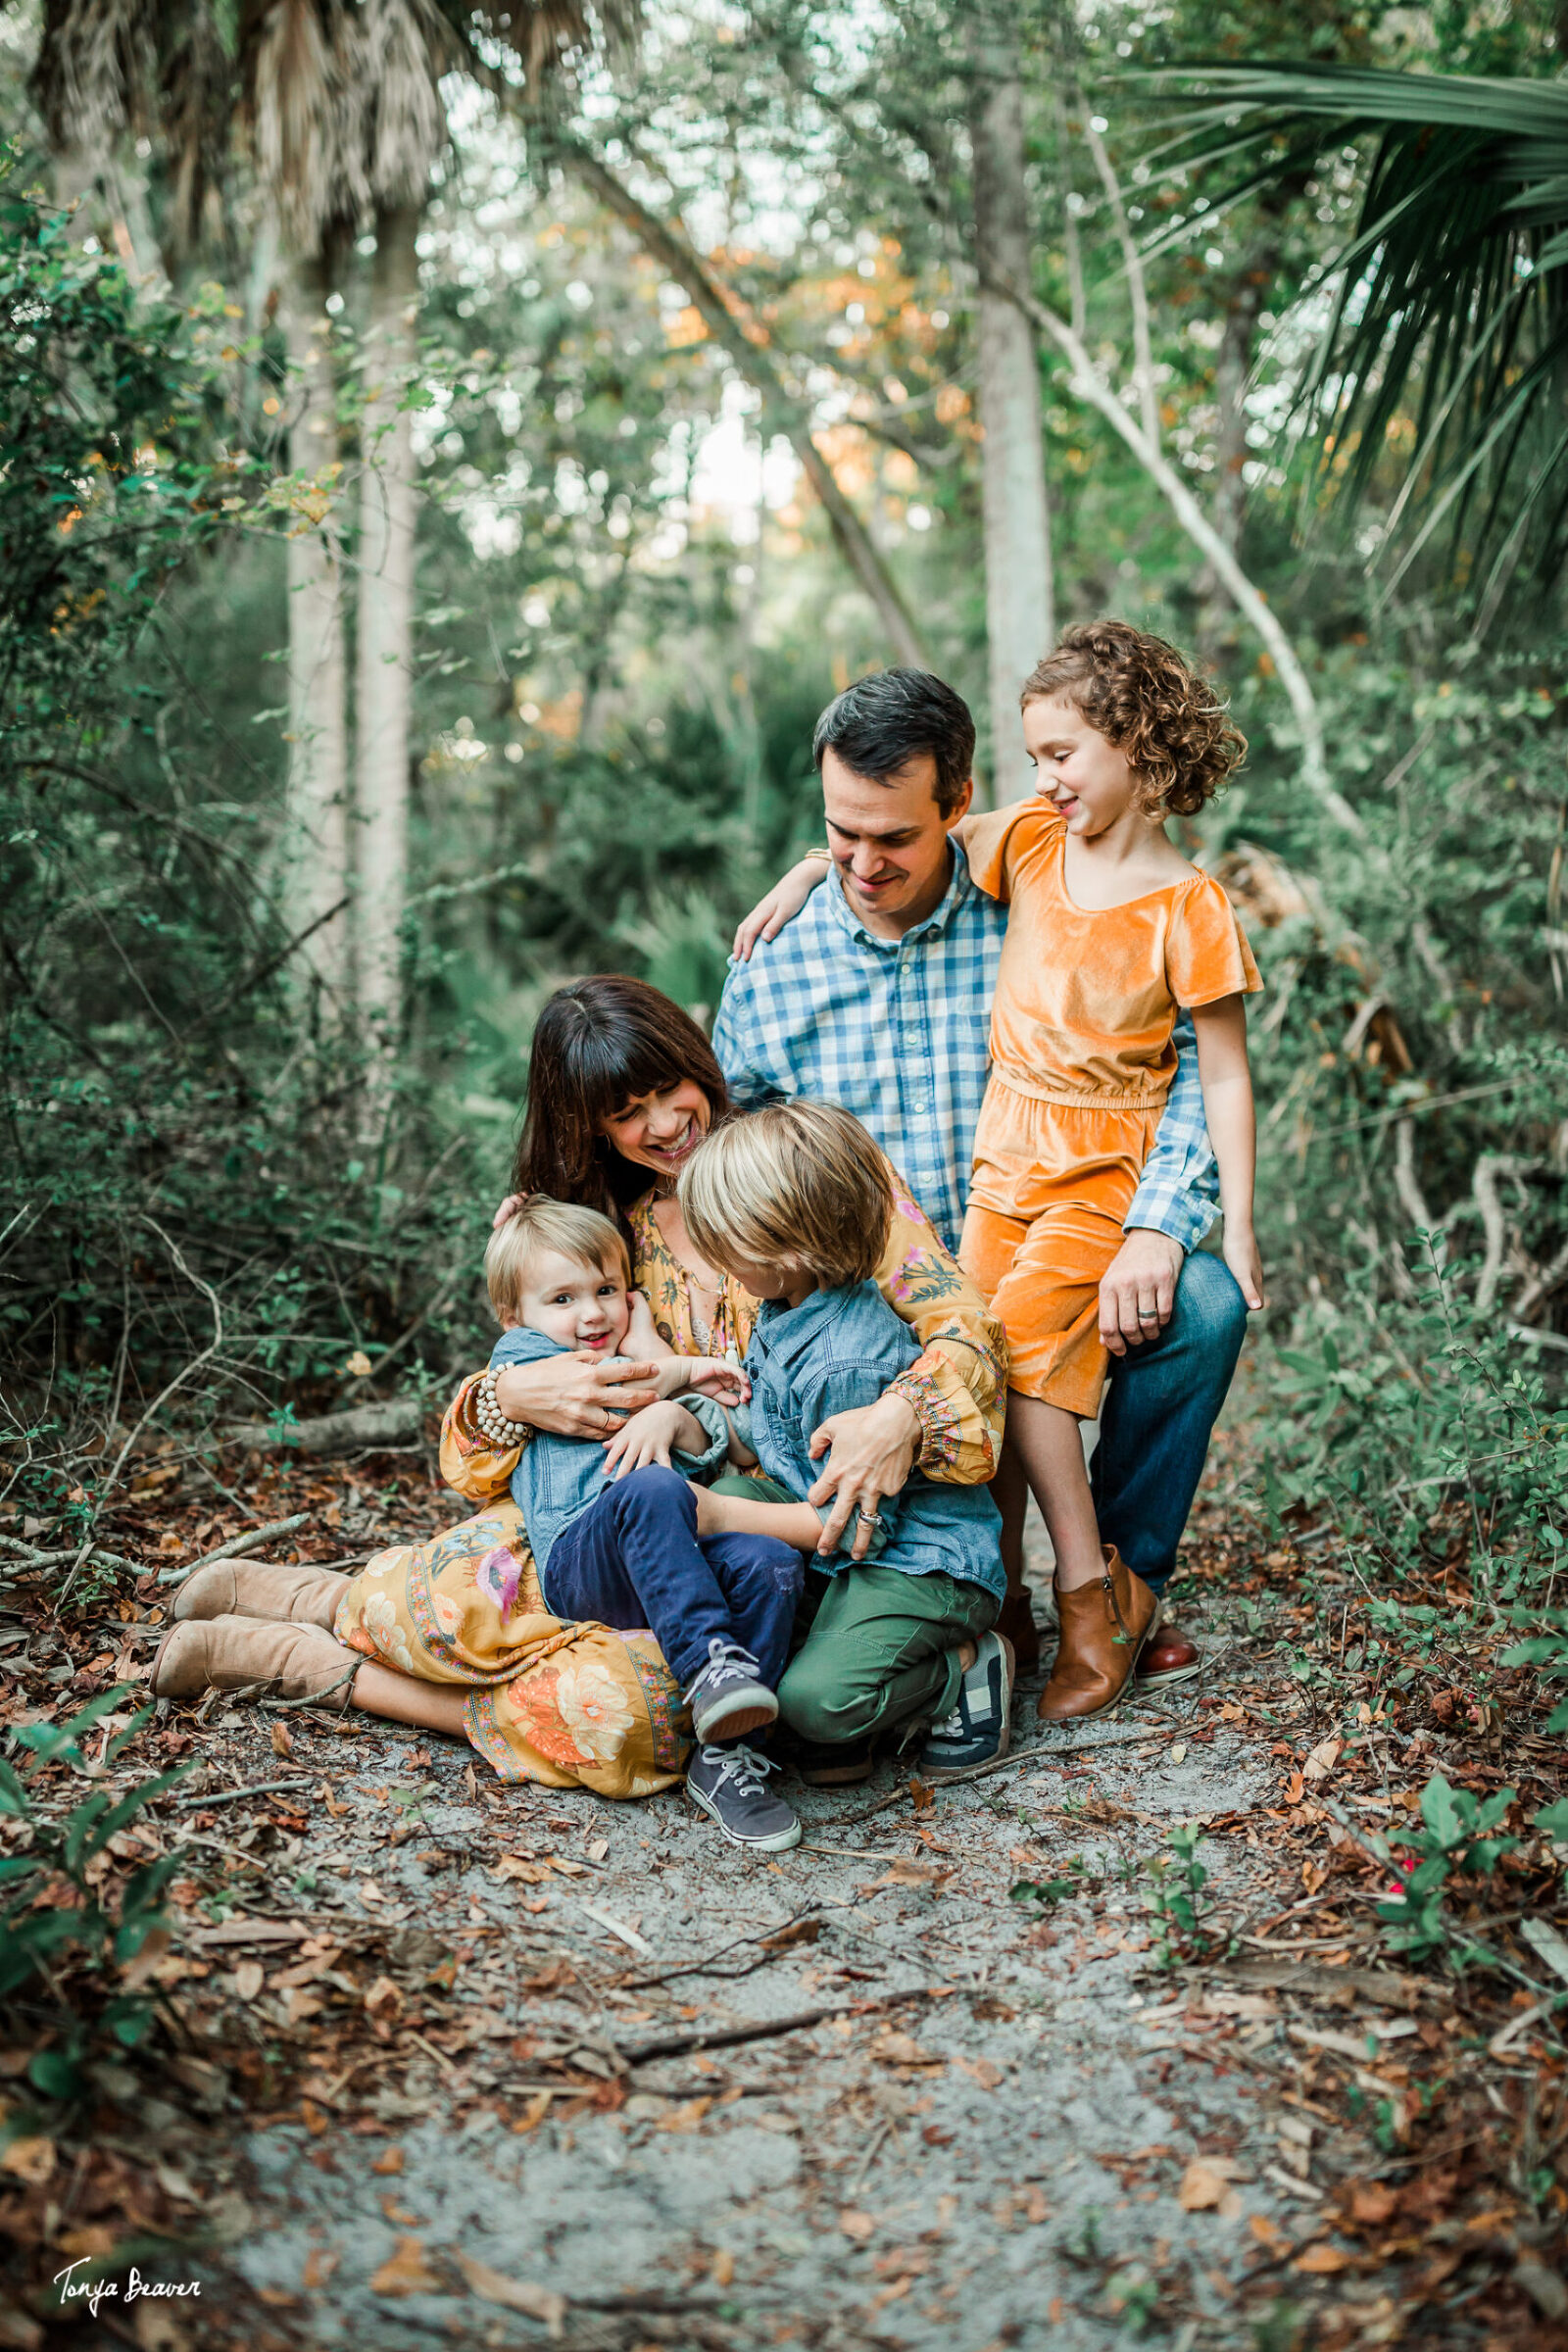 jacksonville family photographer tonya beaver photography